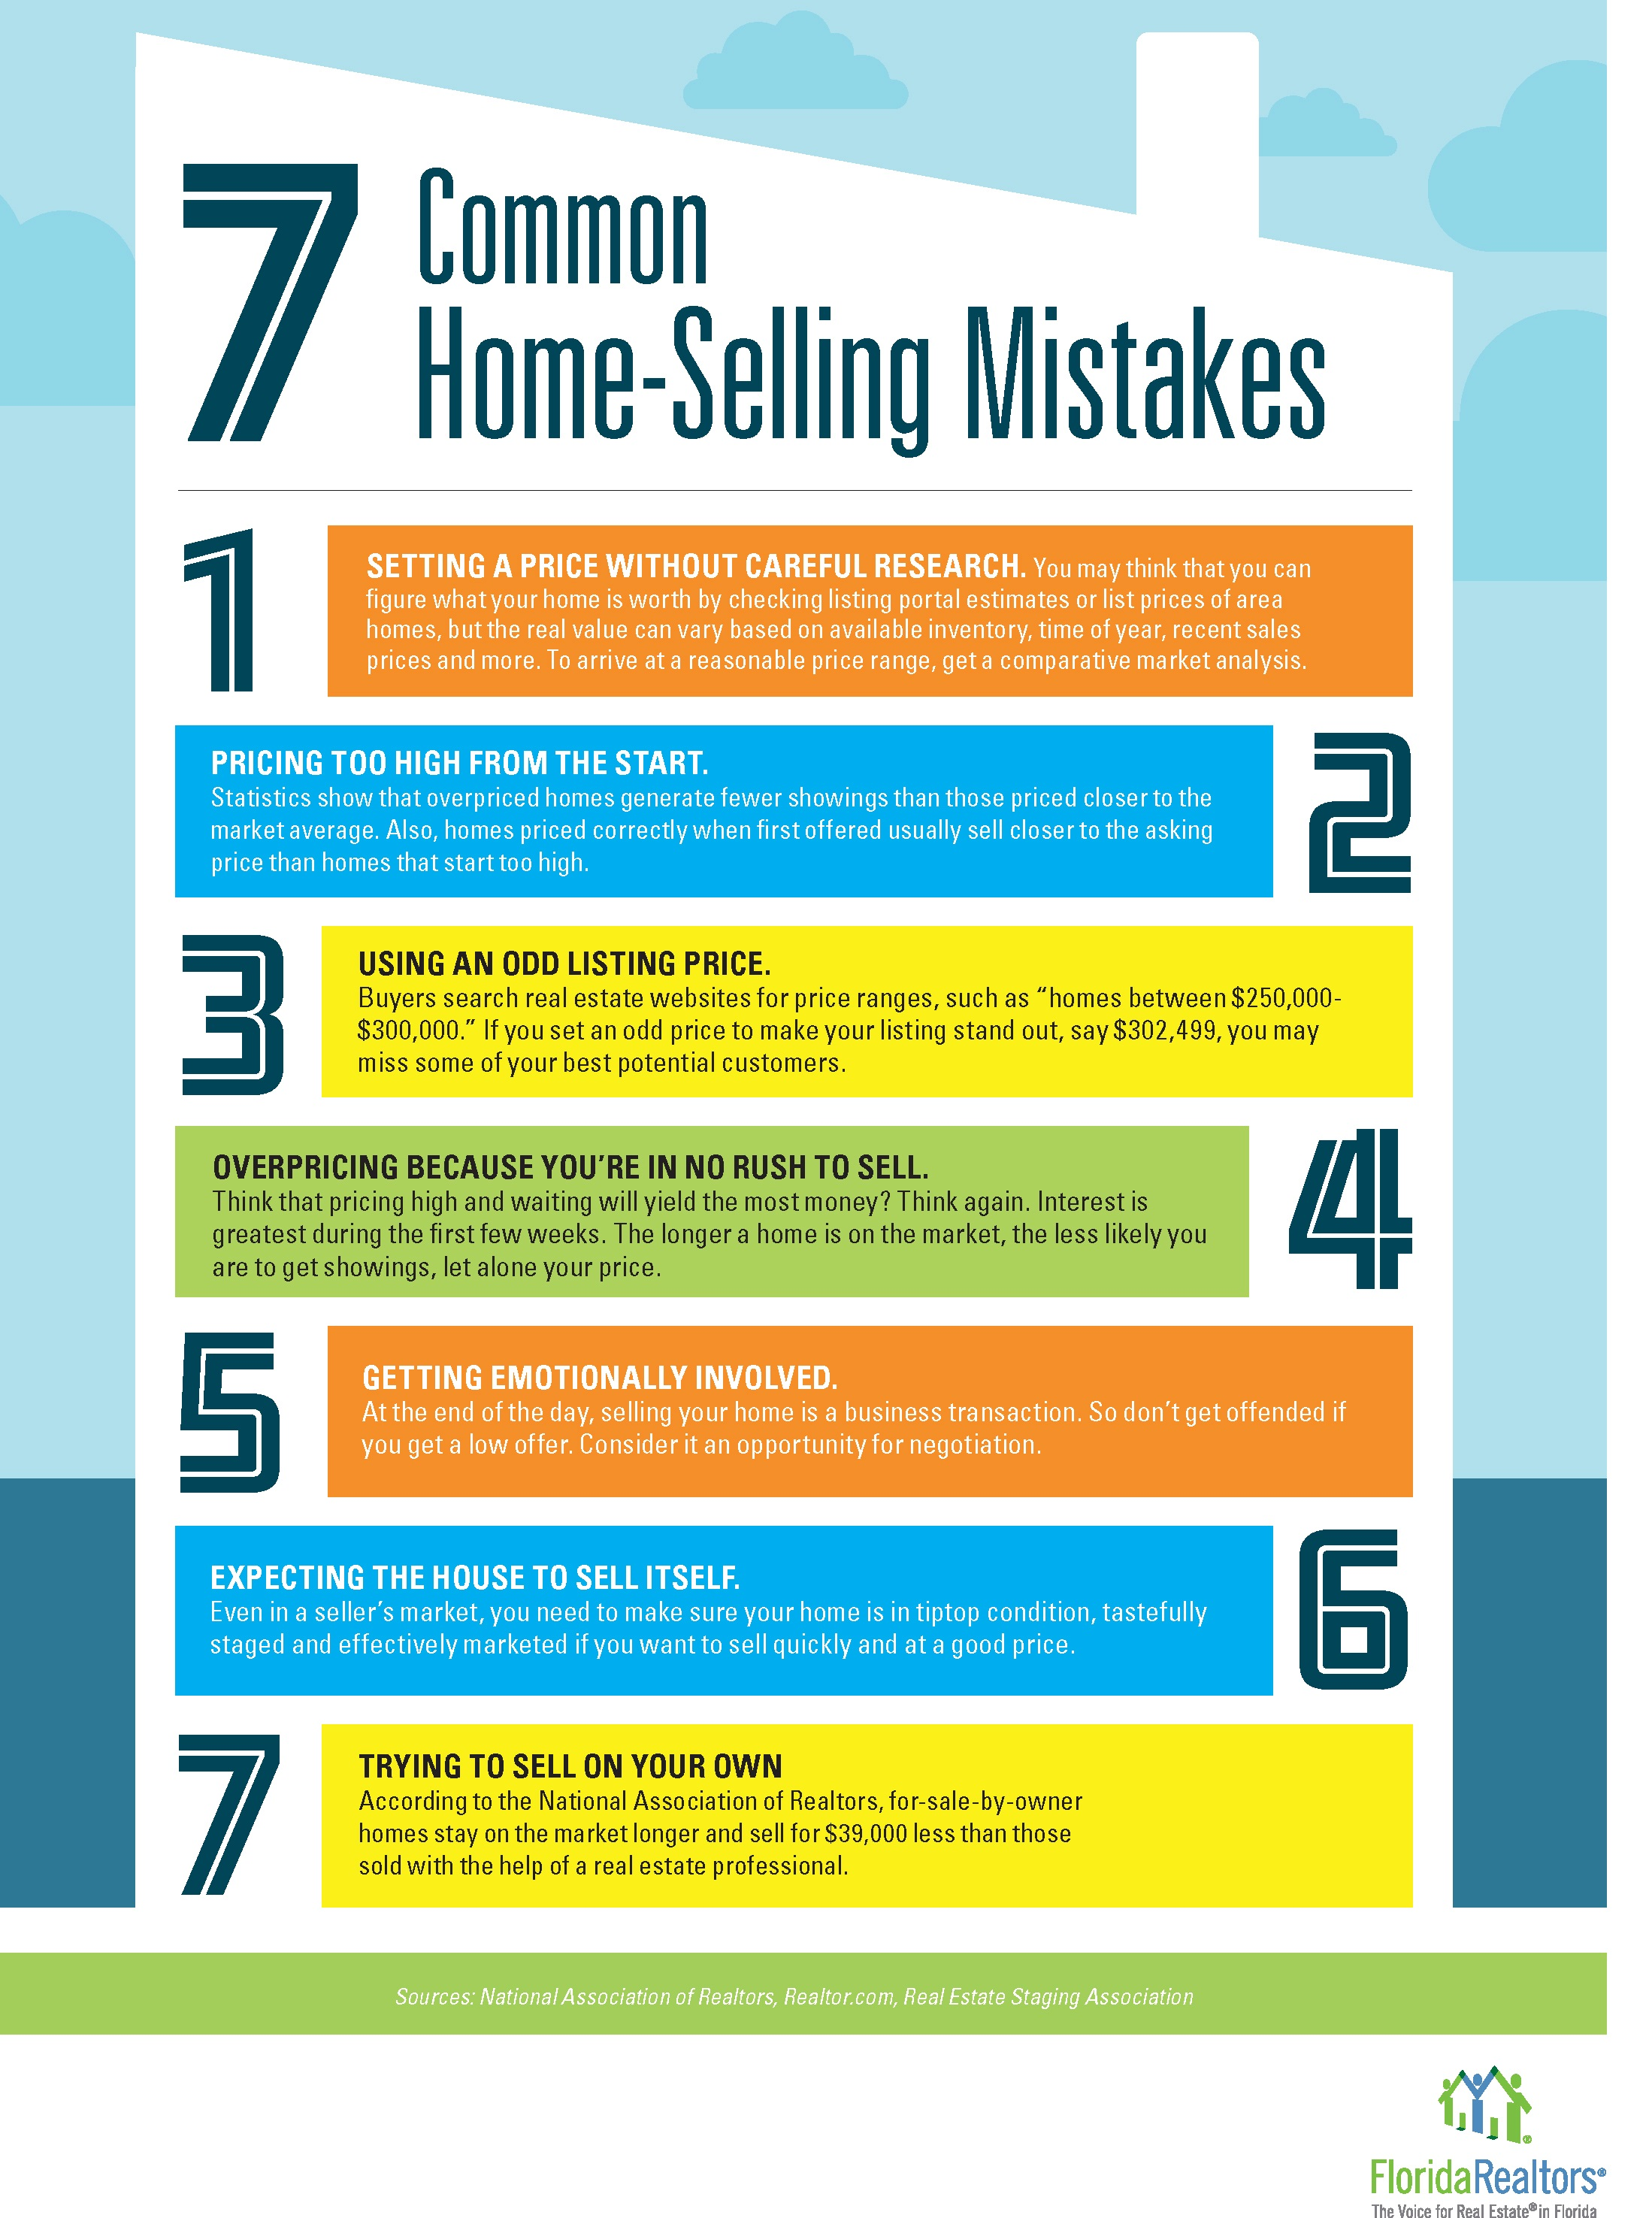 7 Common Home Selling Mistakes